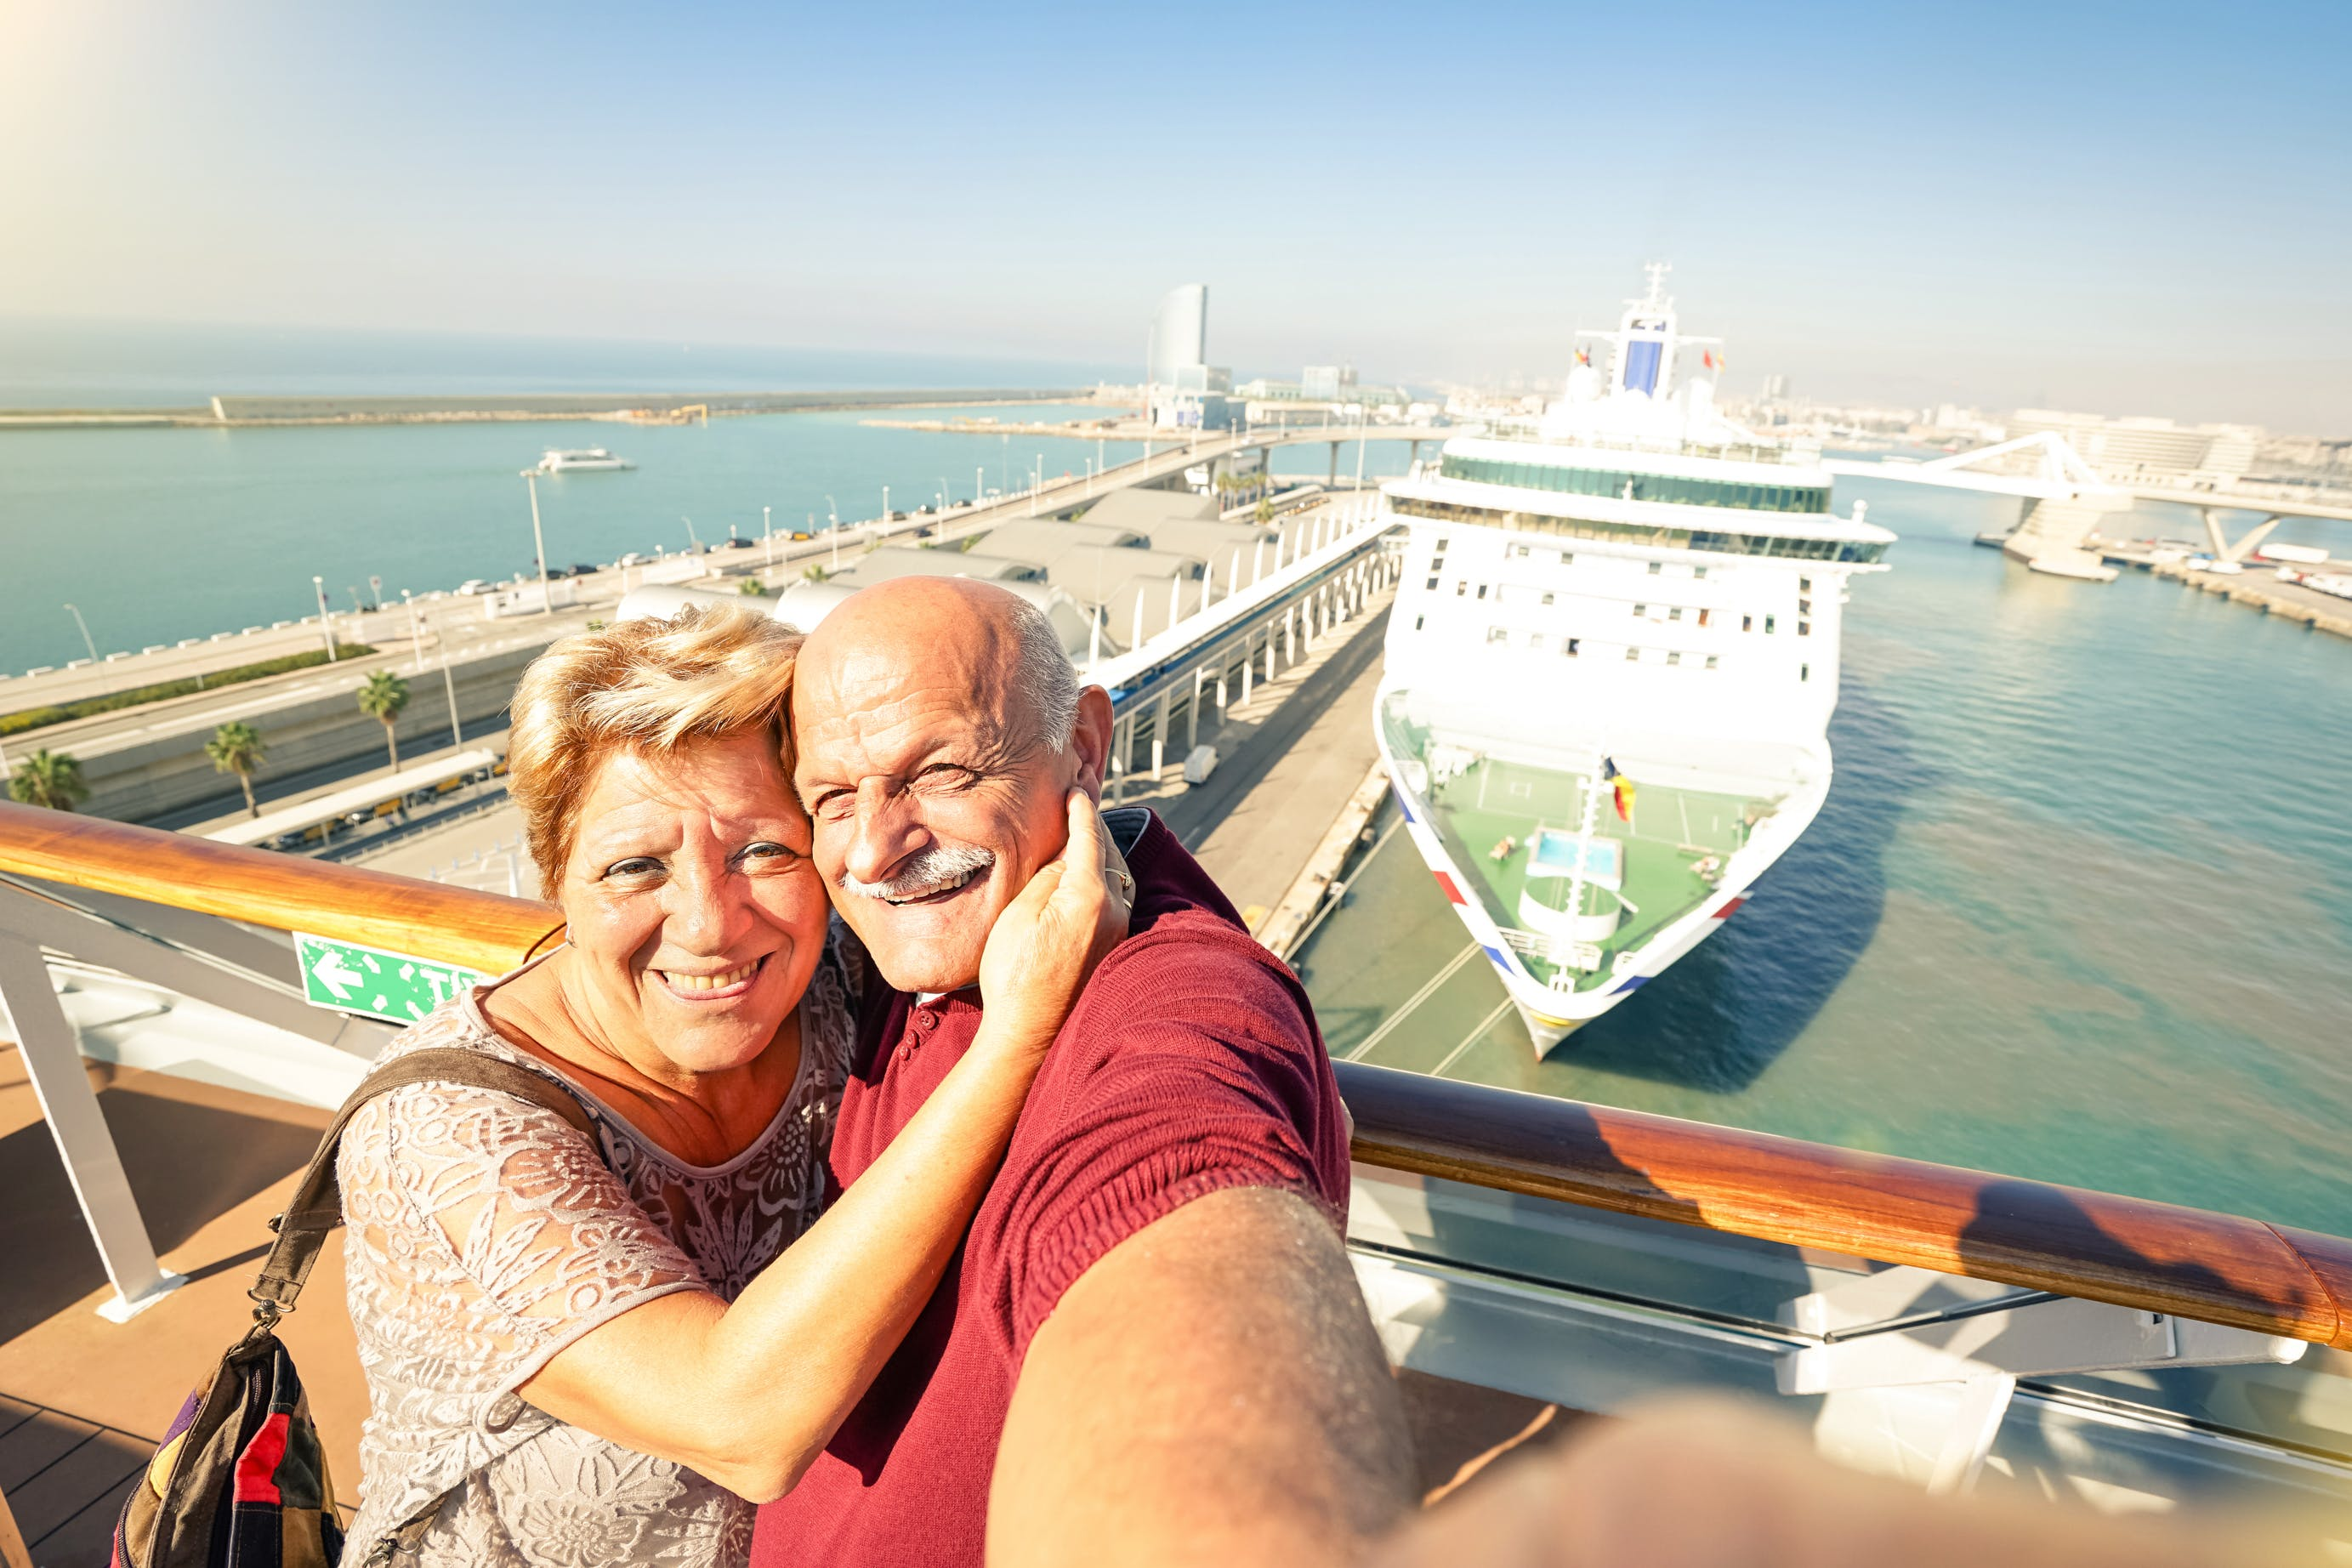 Senior couple taking selfie in front of cruise ship.